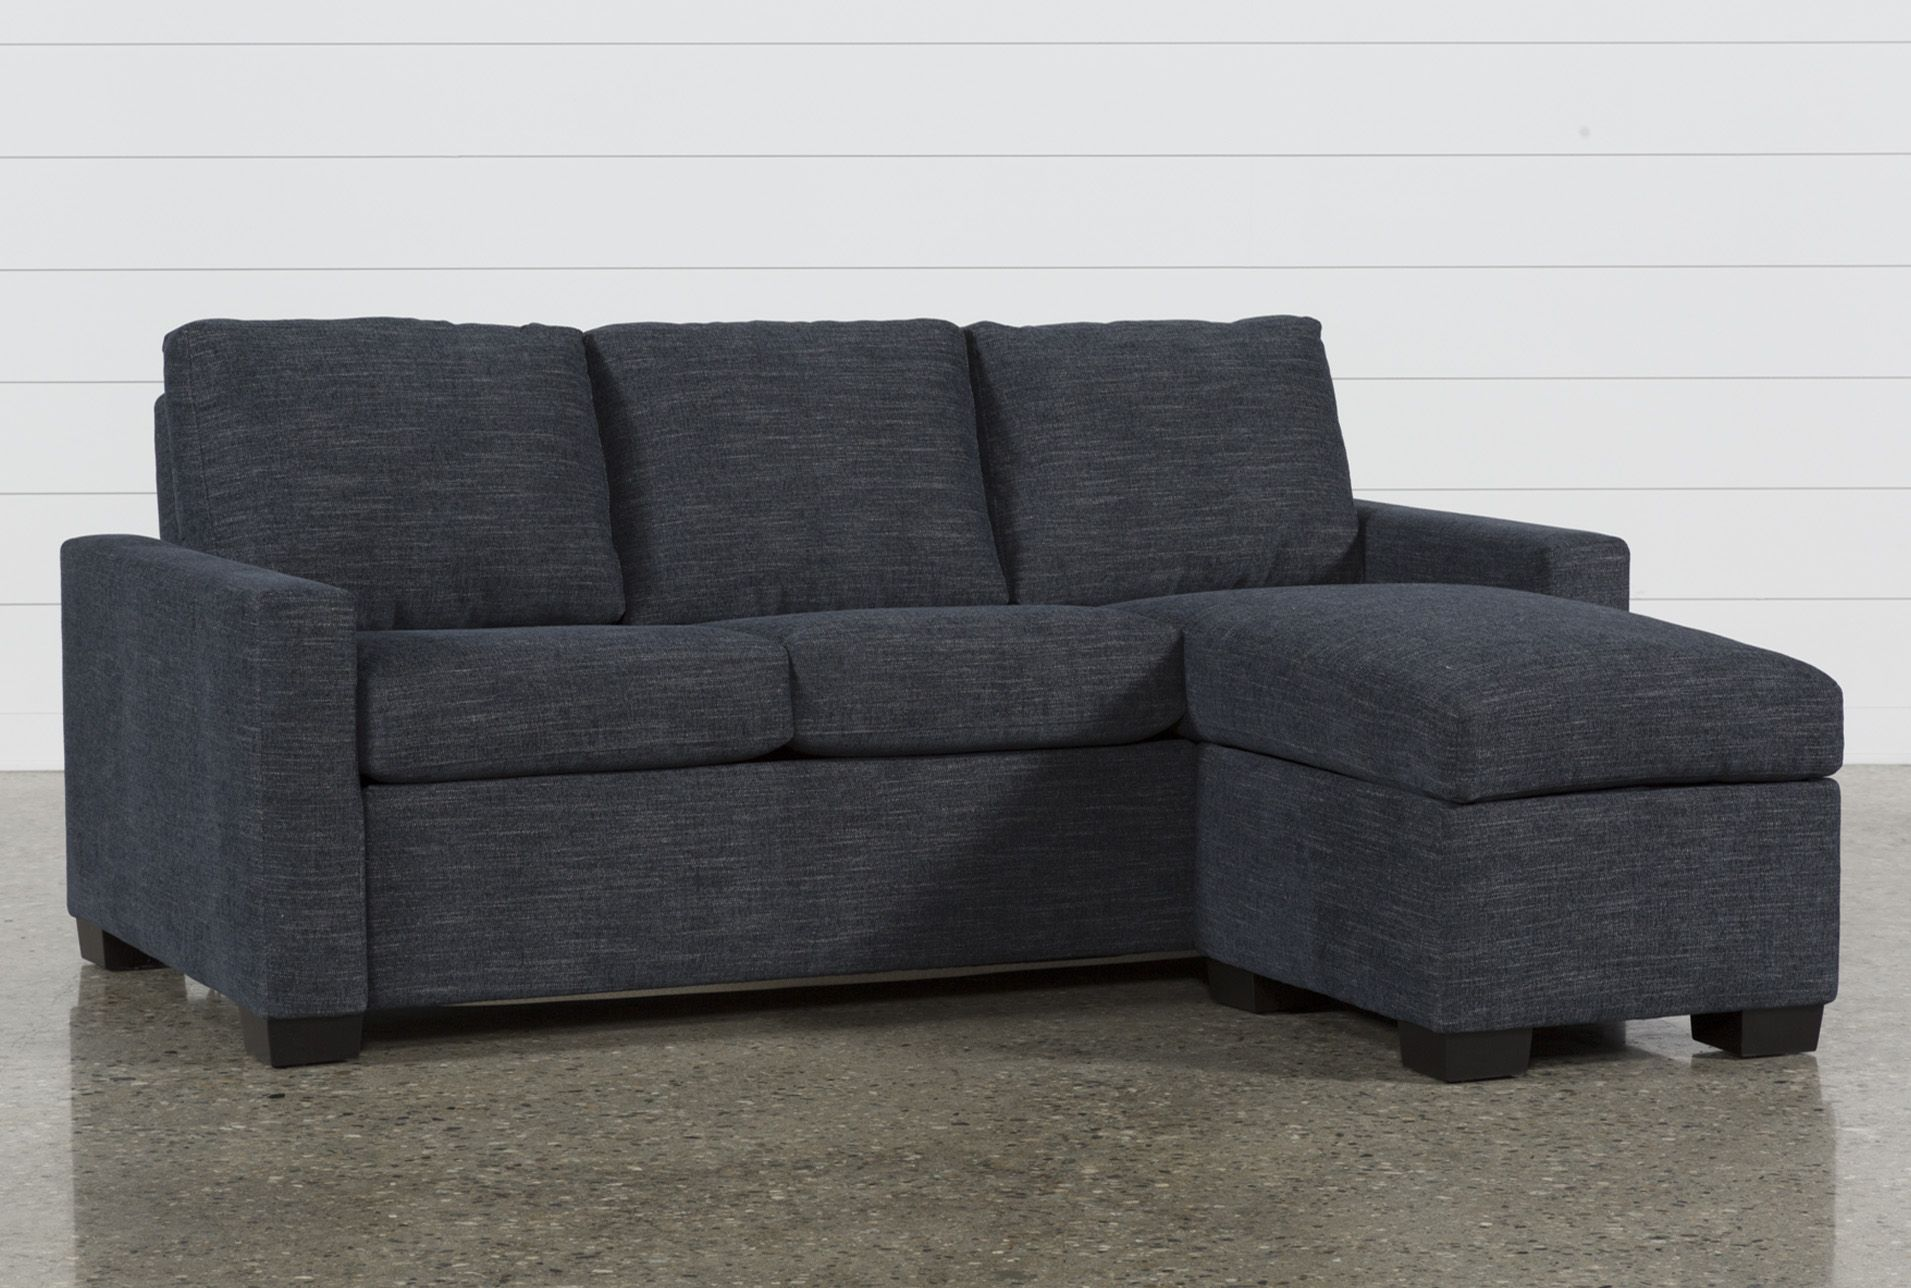 The Sofa Bed Offers Space Saving Comfort Storage Chaise Sofa